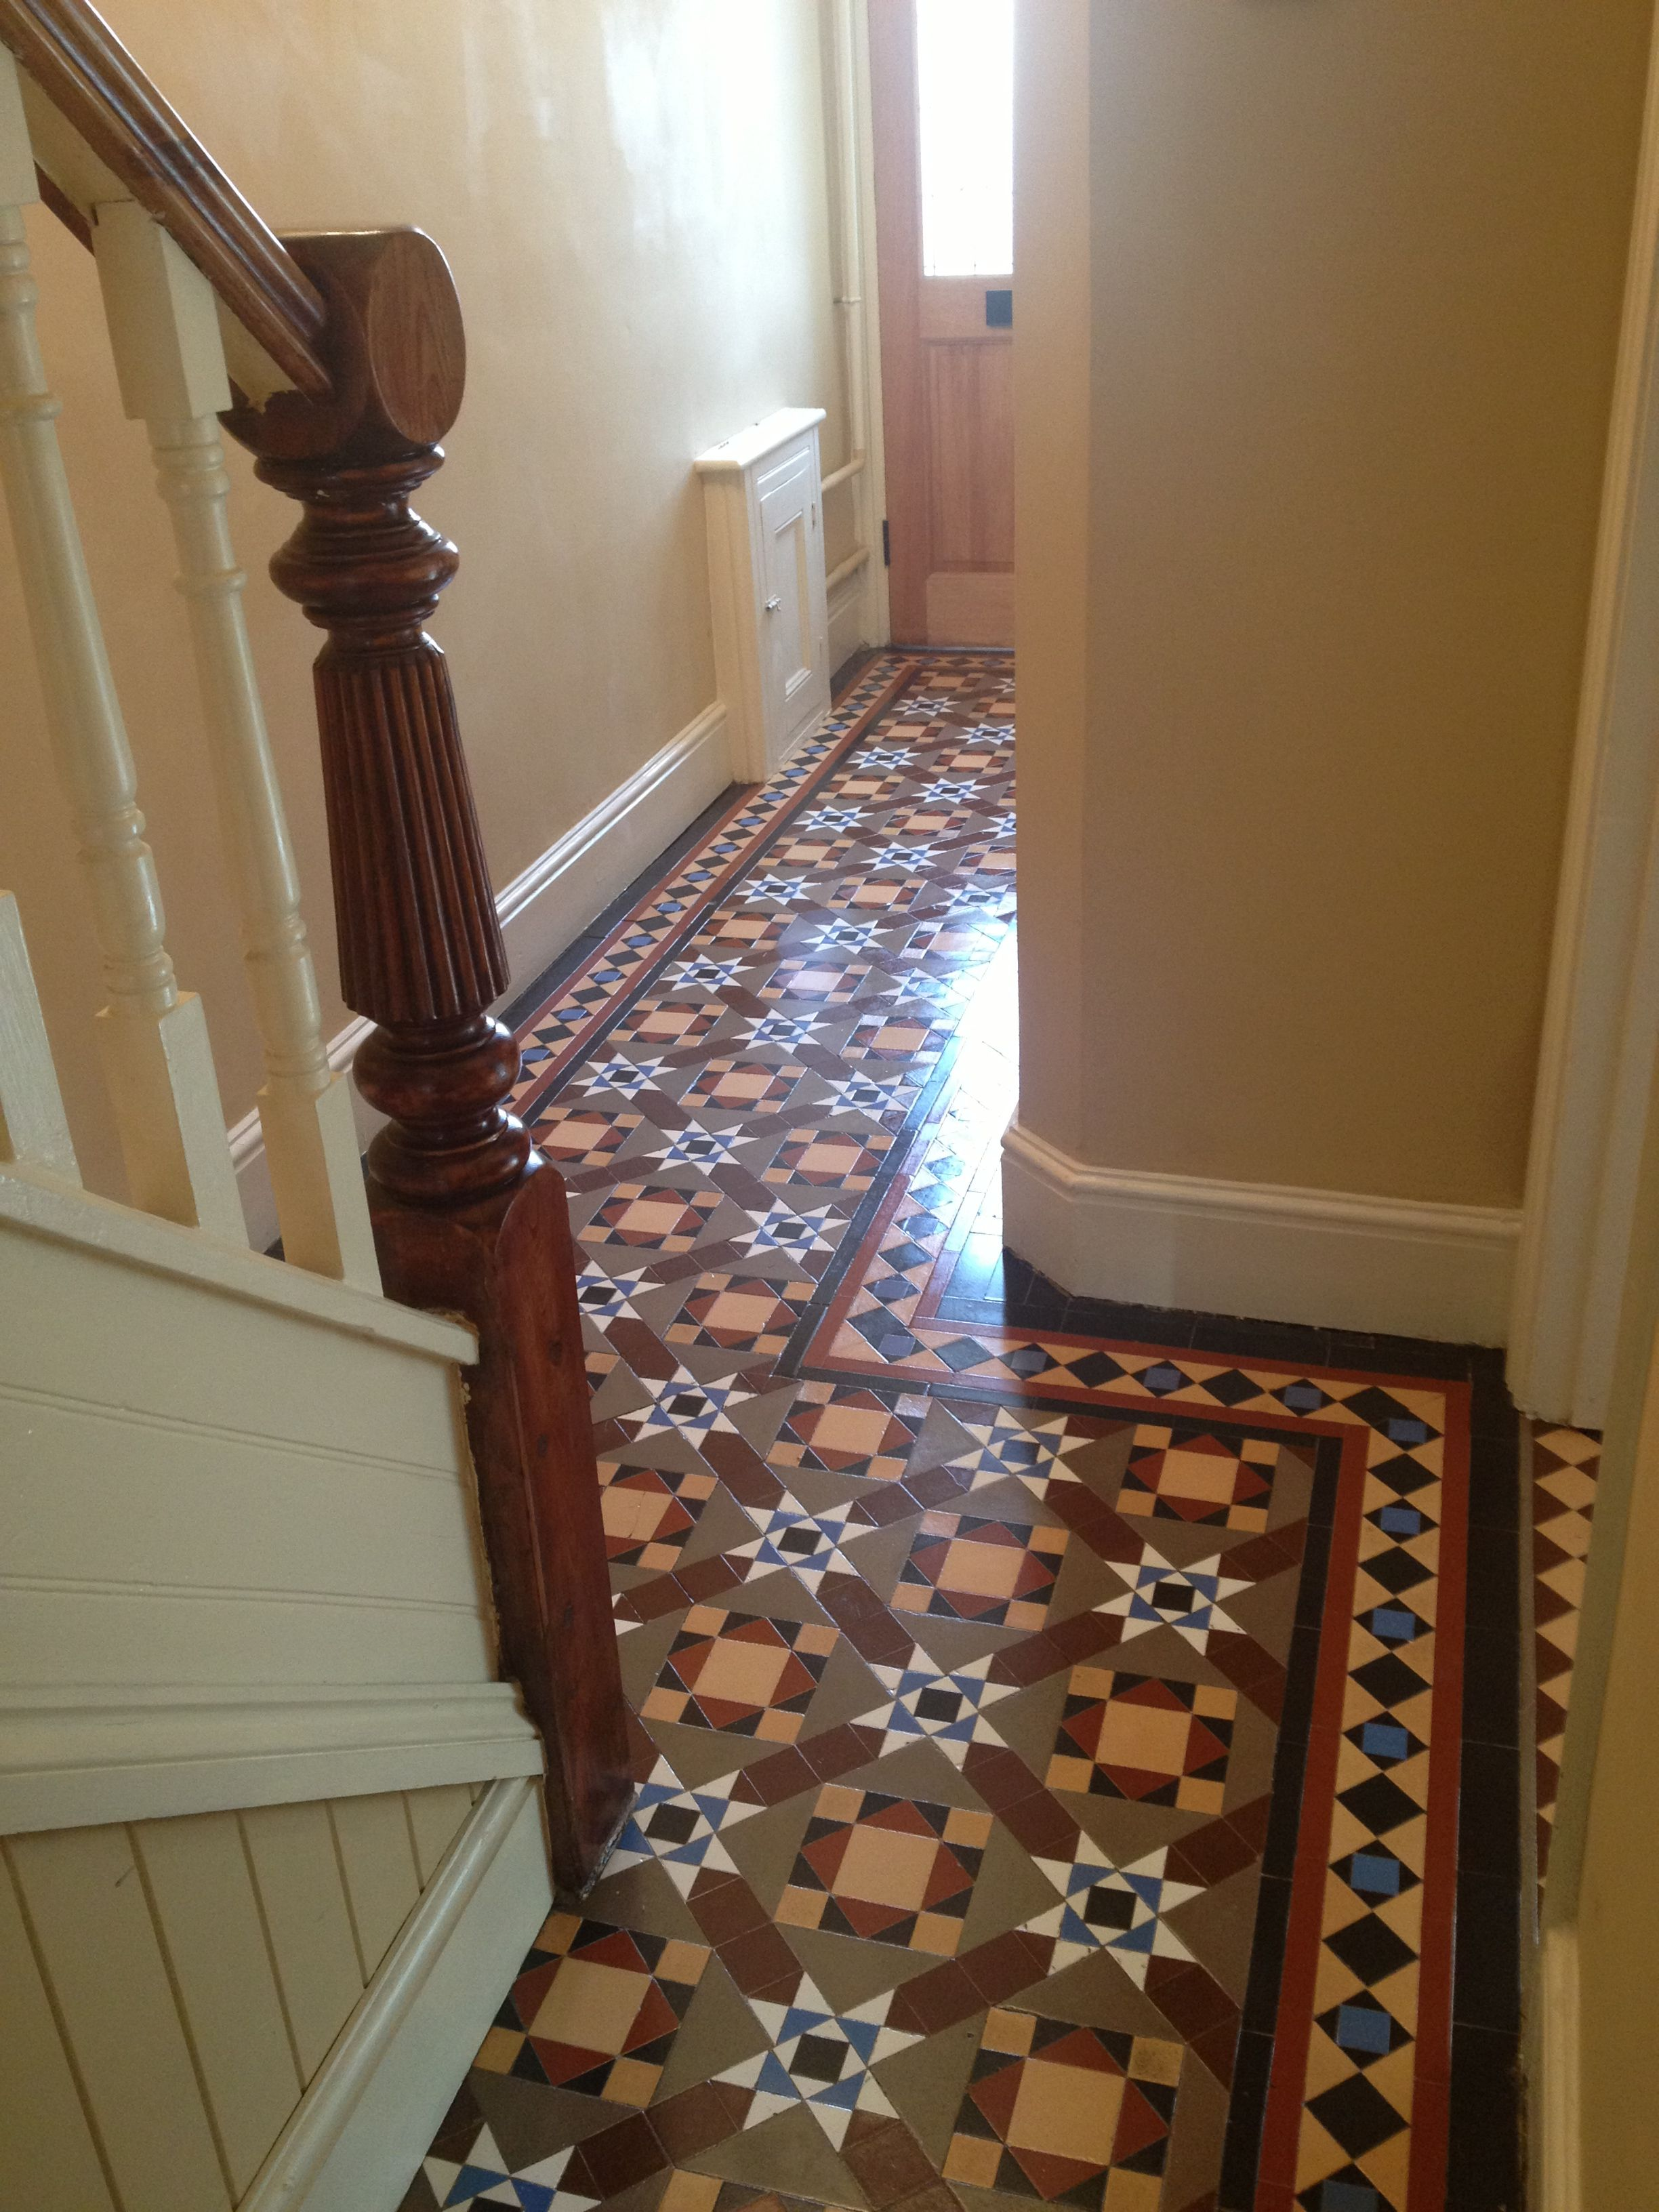 Pin By Alexia Mackey On Original Pinned Material Tiled Hallway